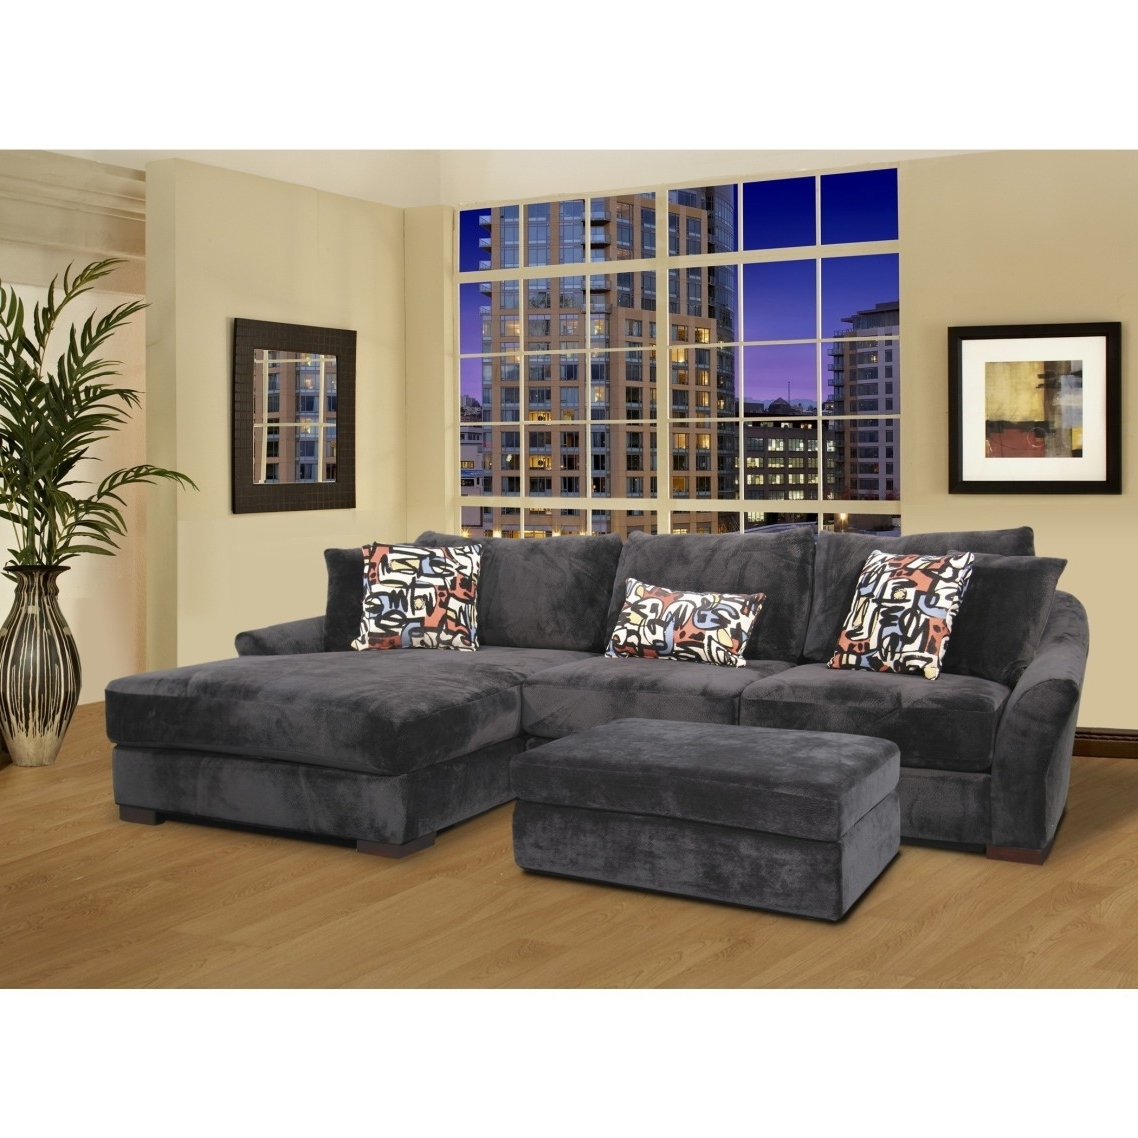 Current Gray Velvet Oversized Sectional Sleeper Sofa With Left Chaise Pertaining To Sectional Sleeper Sofas With Ottoman (View 7 of 20)